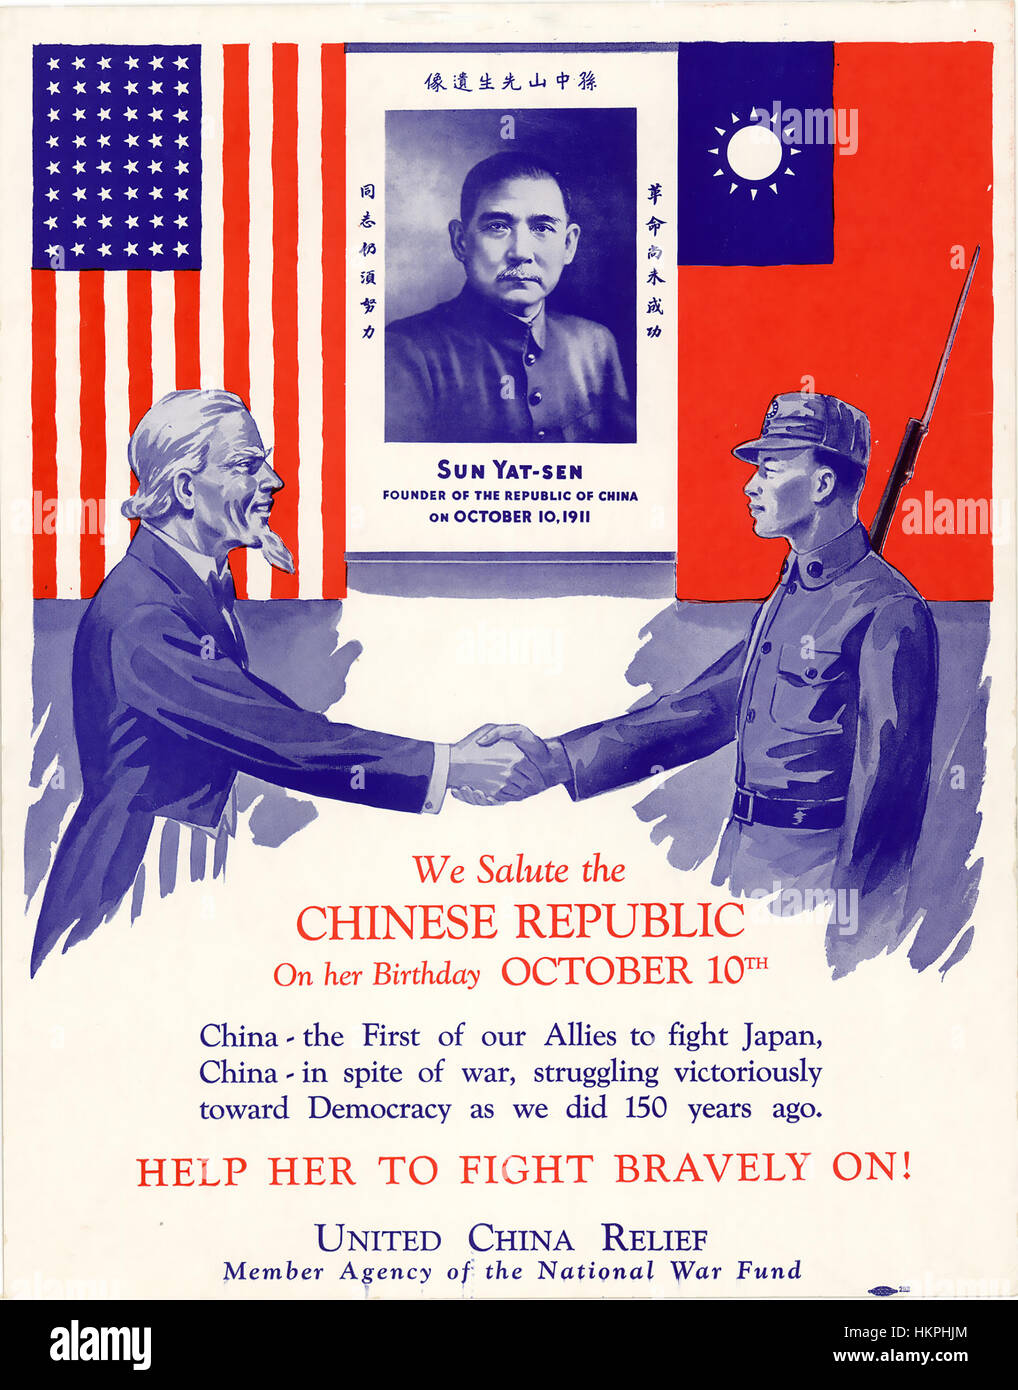 1940 War Poster Stock Photos & 1940 War Poster Stock ...